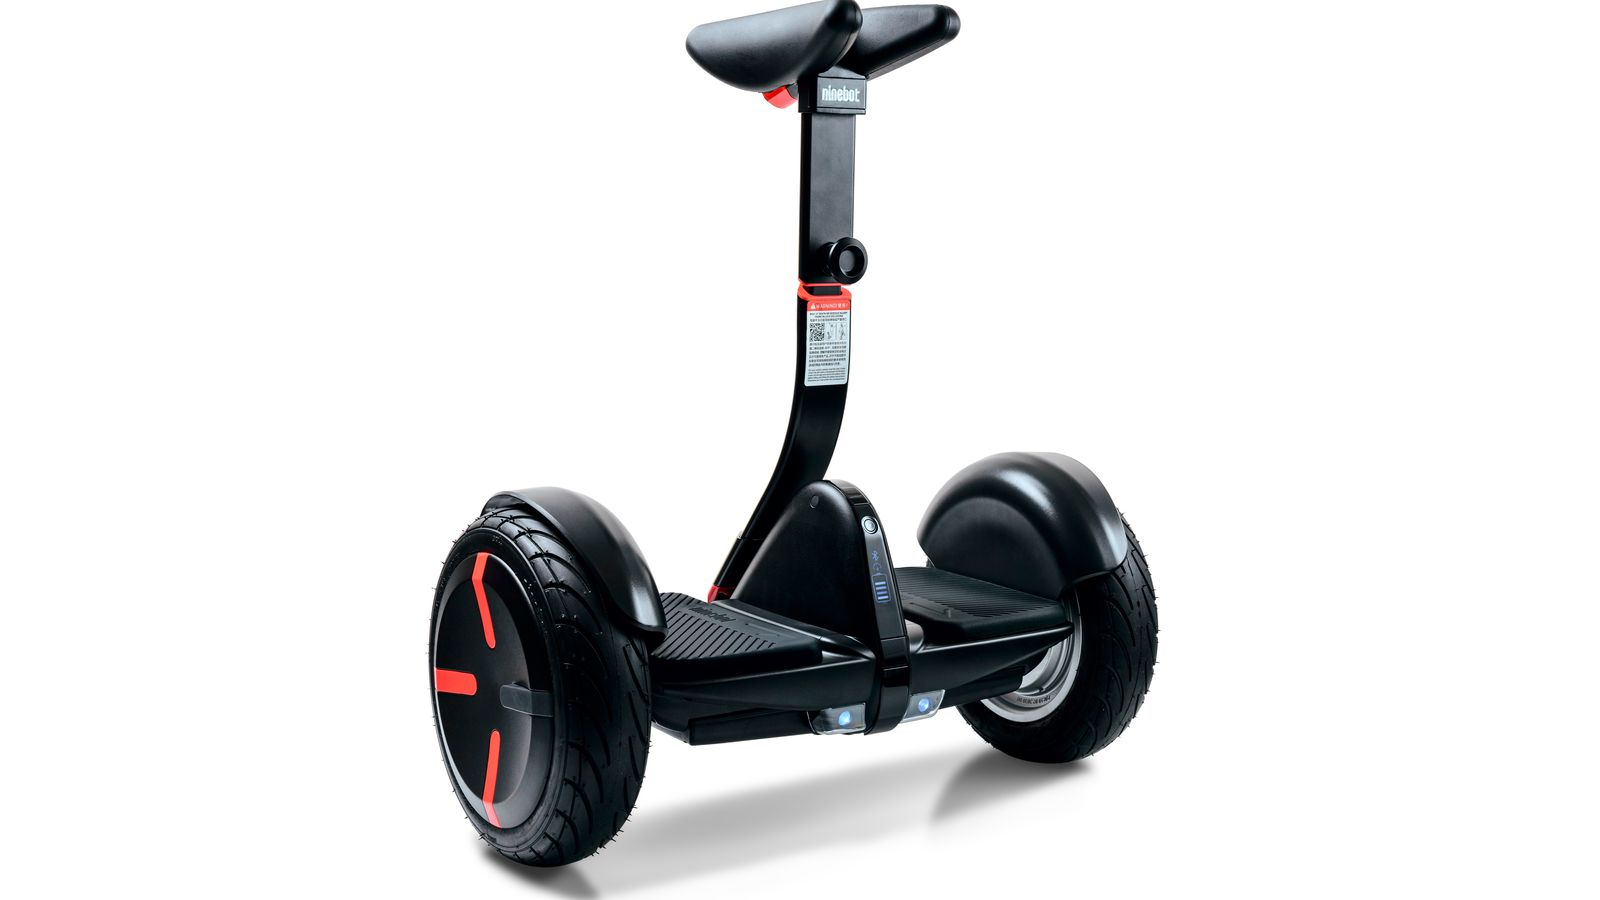 Surprise: Pairing your Segway Hoverboard to an App Isn't a Great Idea